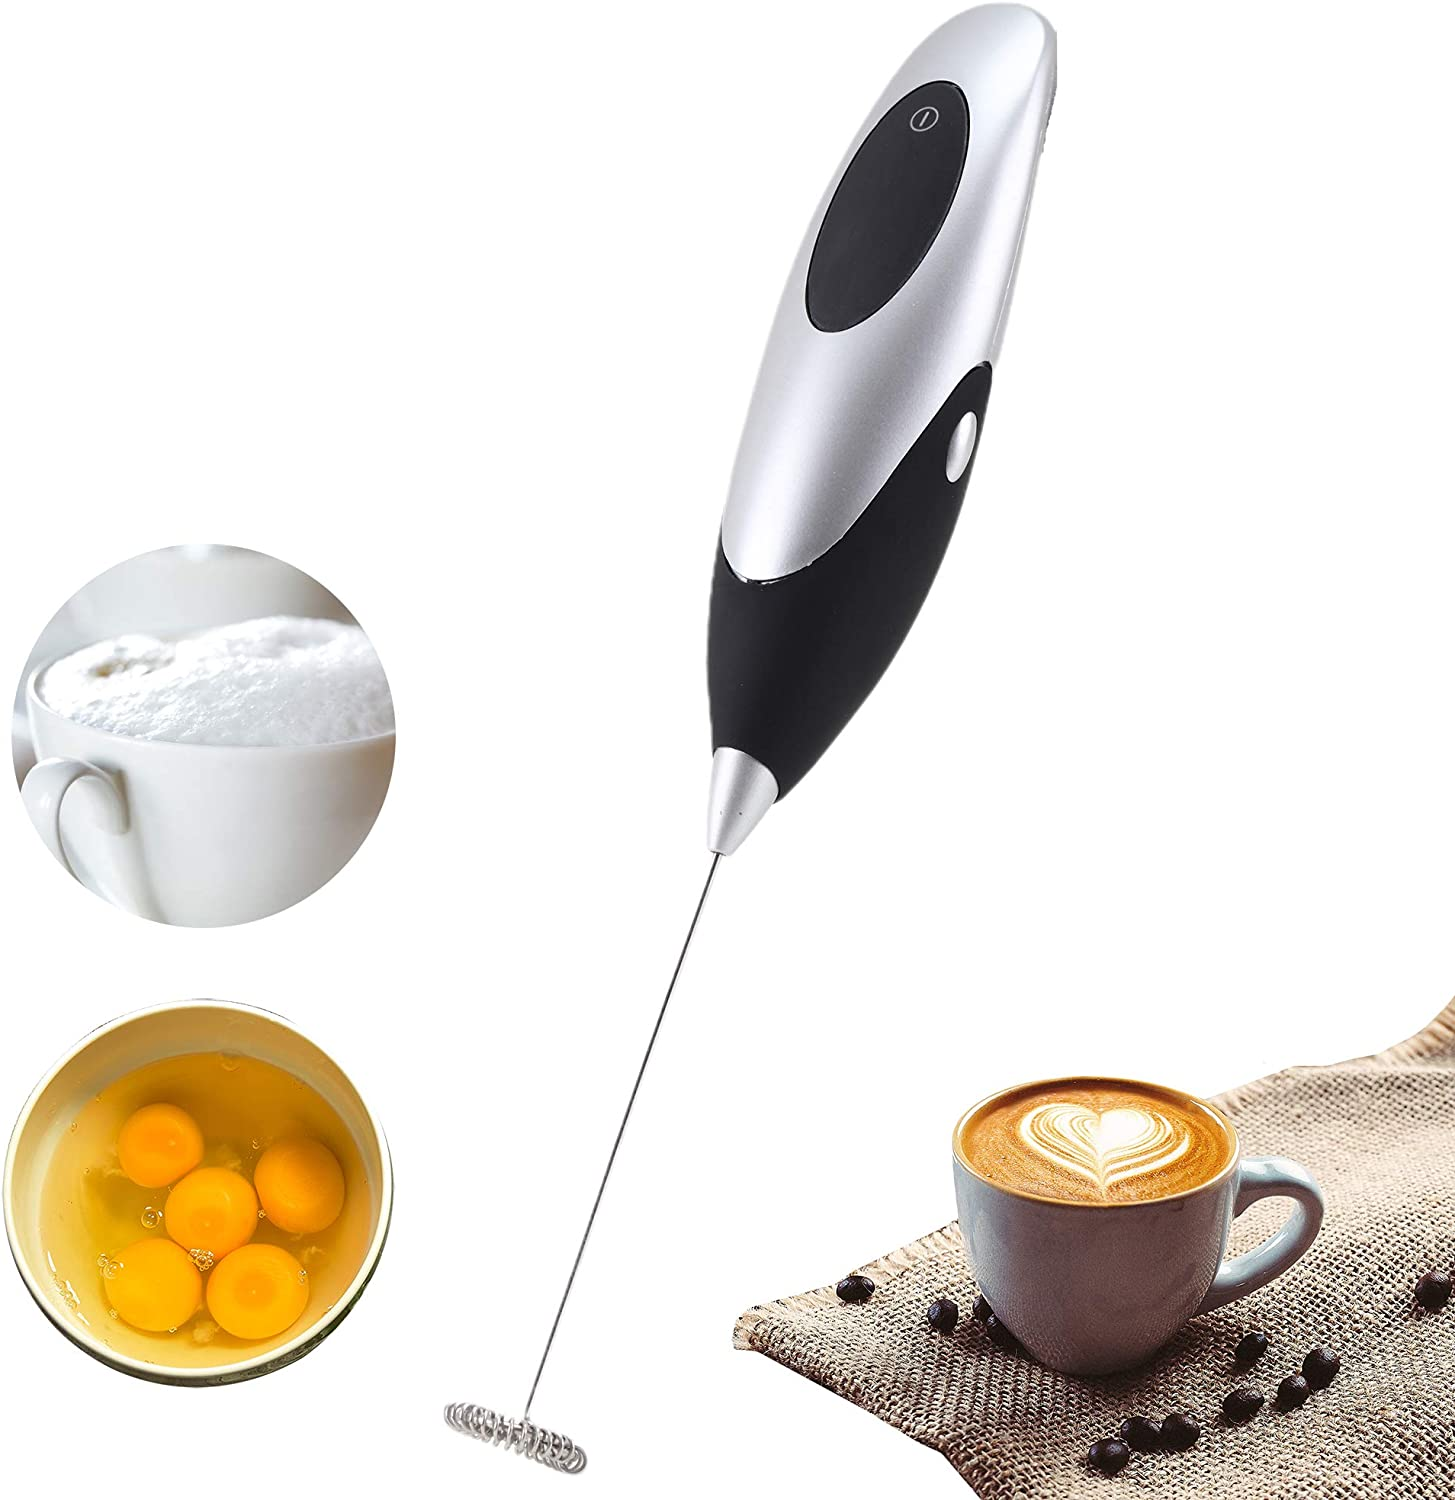 Mini Handheld Electric Blender, Electric Coffee Mixer, Milk Frother, Egg Beater, AA Battery Powered High-Speed Electric Blender (Black)